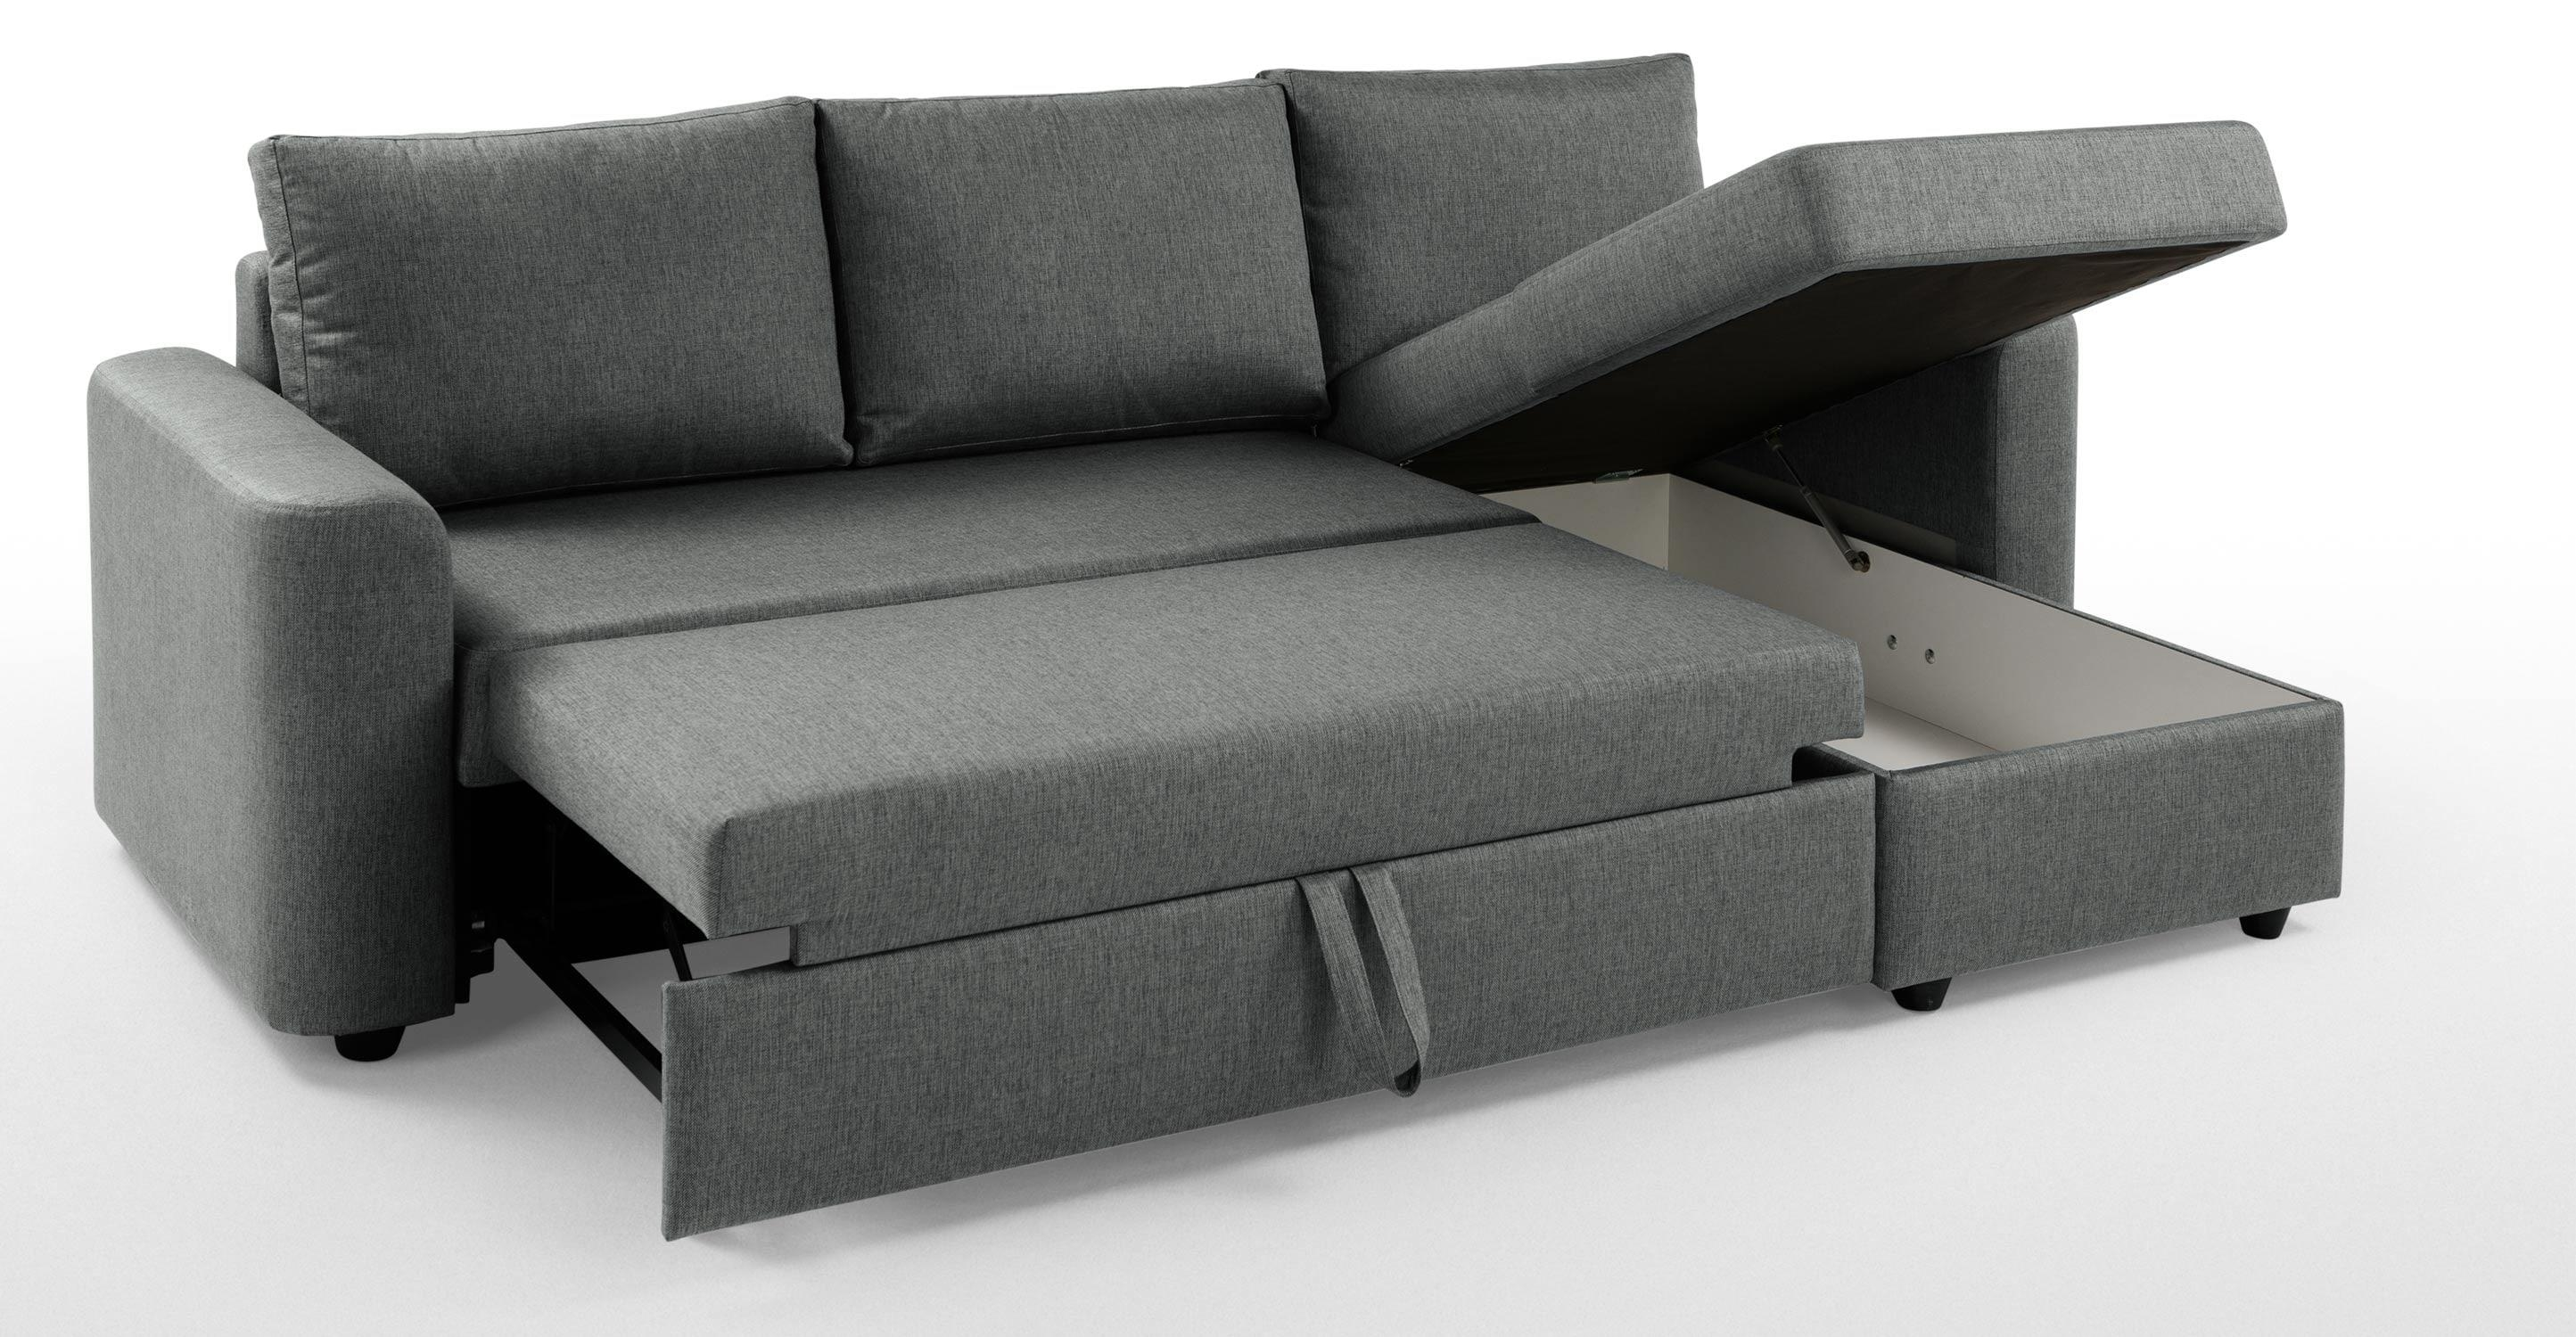 Exellent Sofa Bed With Storage Seater Leather Chaise E Throughout In Sofa Beds With Storage Chaise (Image 5 of 20)